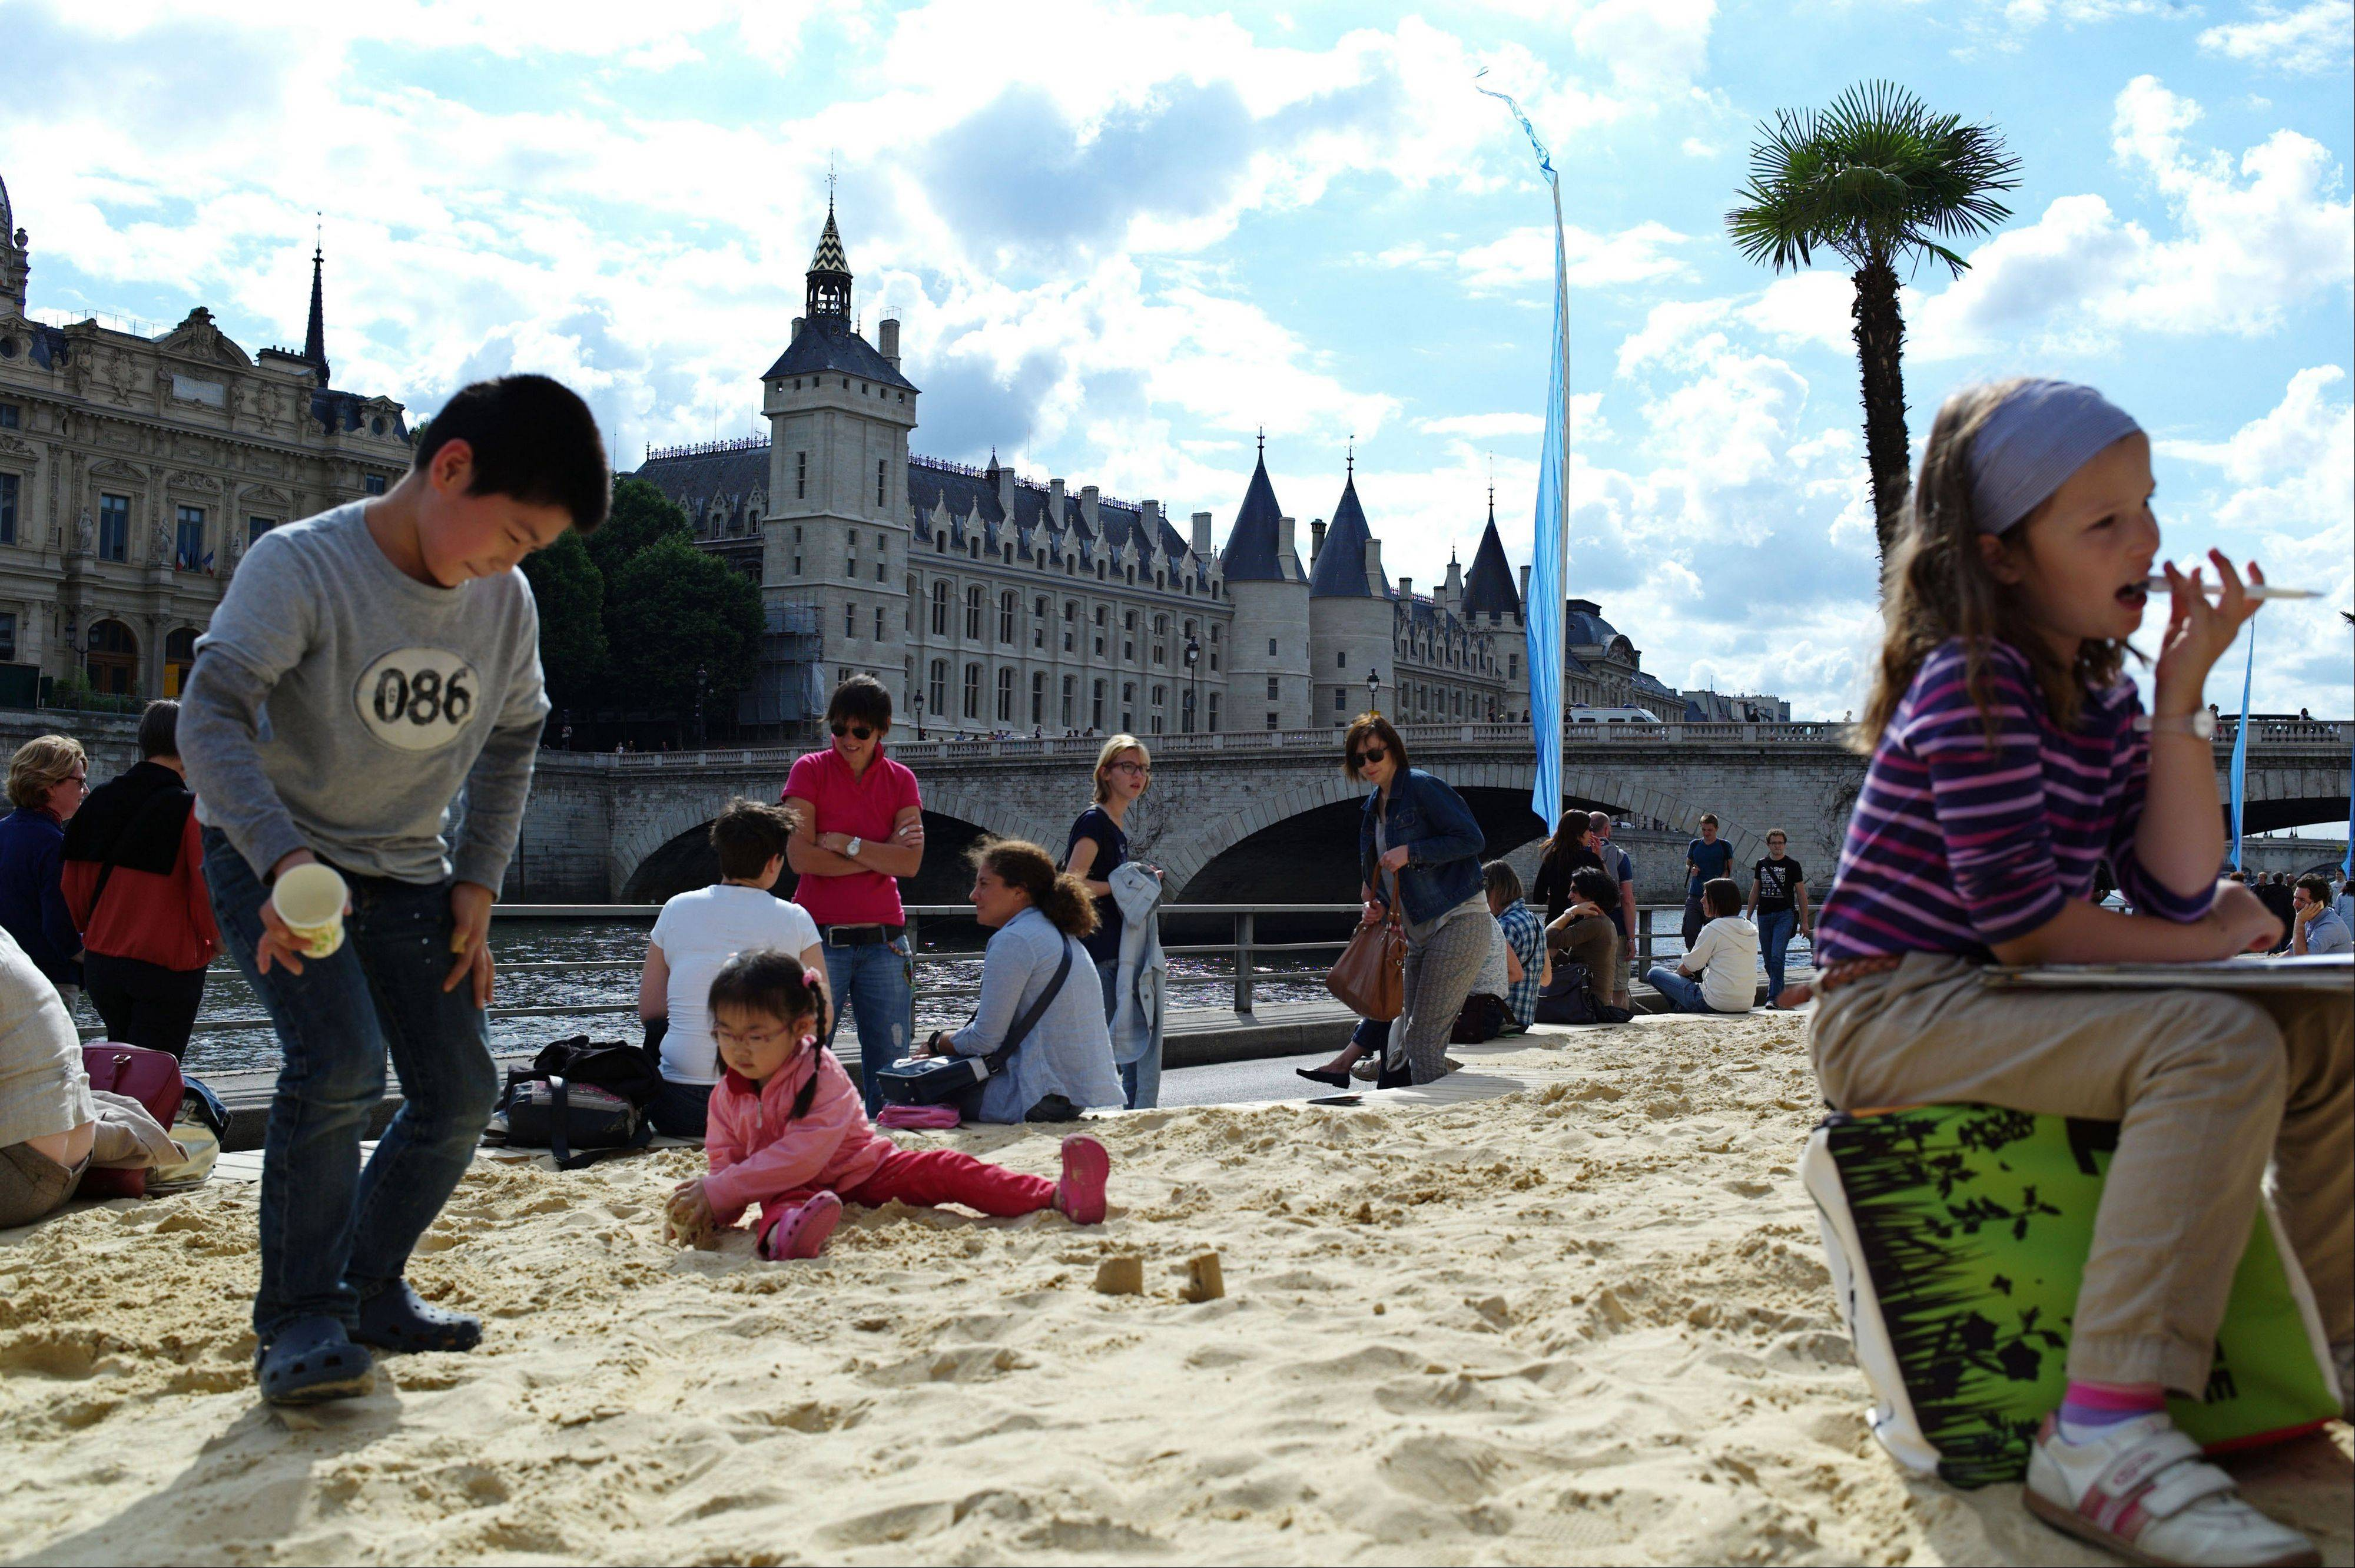 Children play in the sand during the Paris Plages event in Paris, featuring palm trees, sand beaches, hammocks, lounge chairs, volleyball courts and a pool that will line the (2.2-mile) riverside attraction.